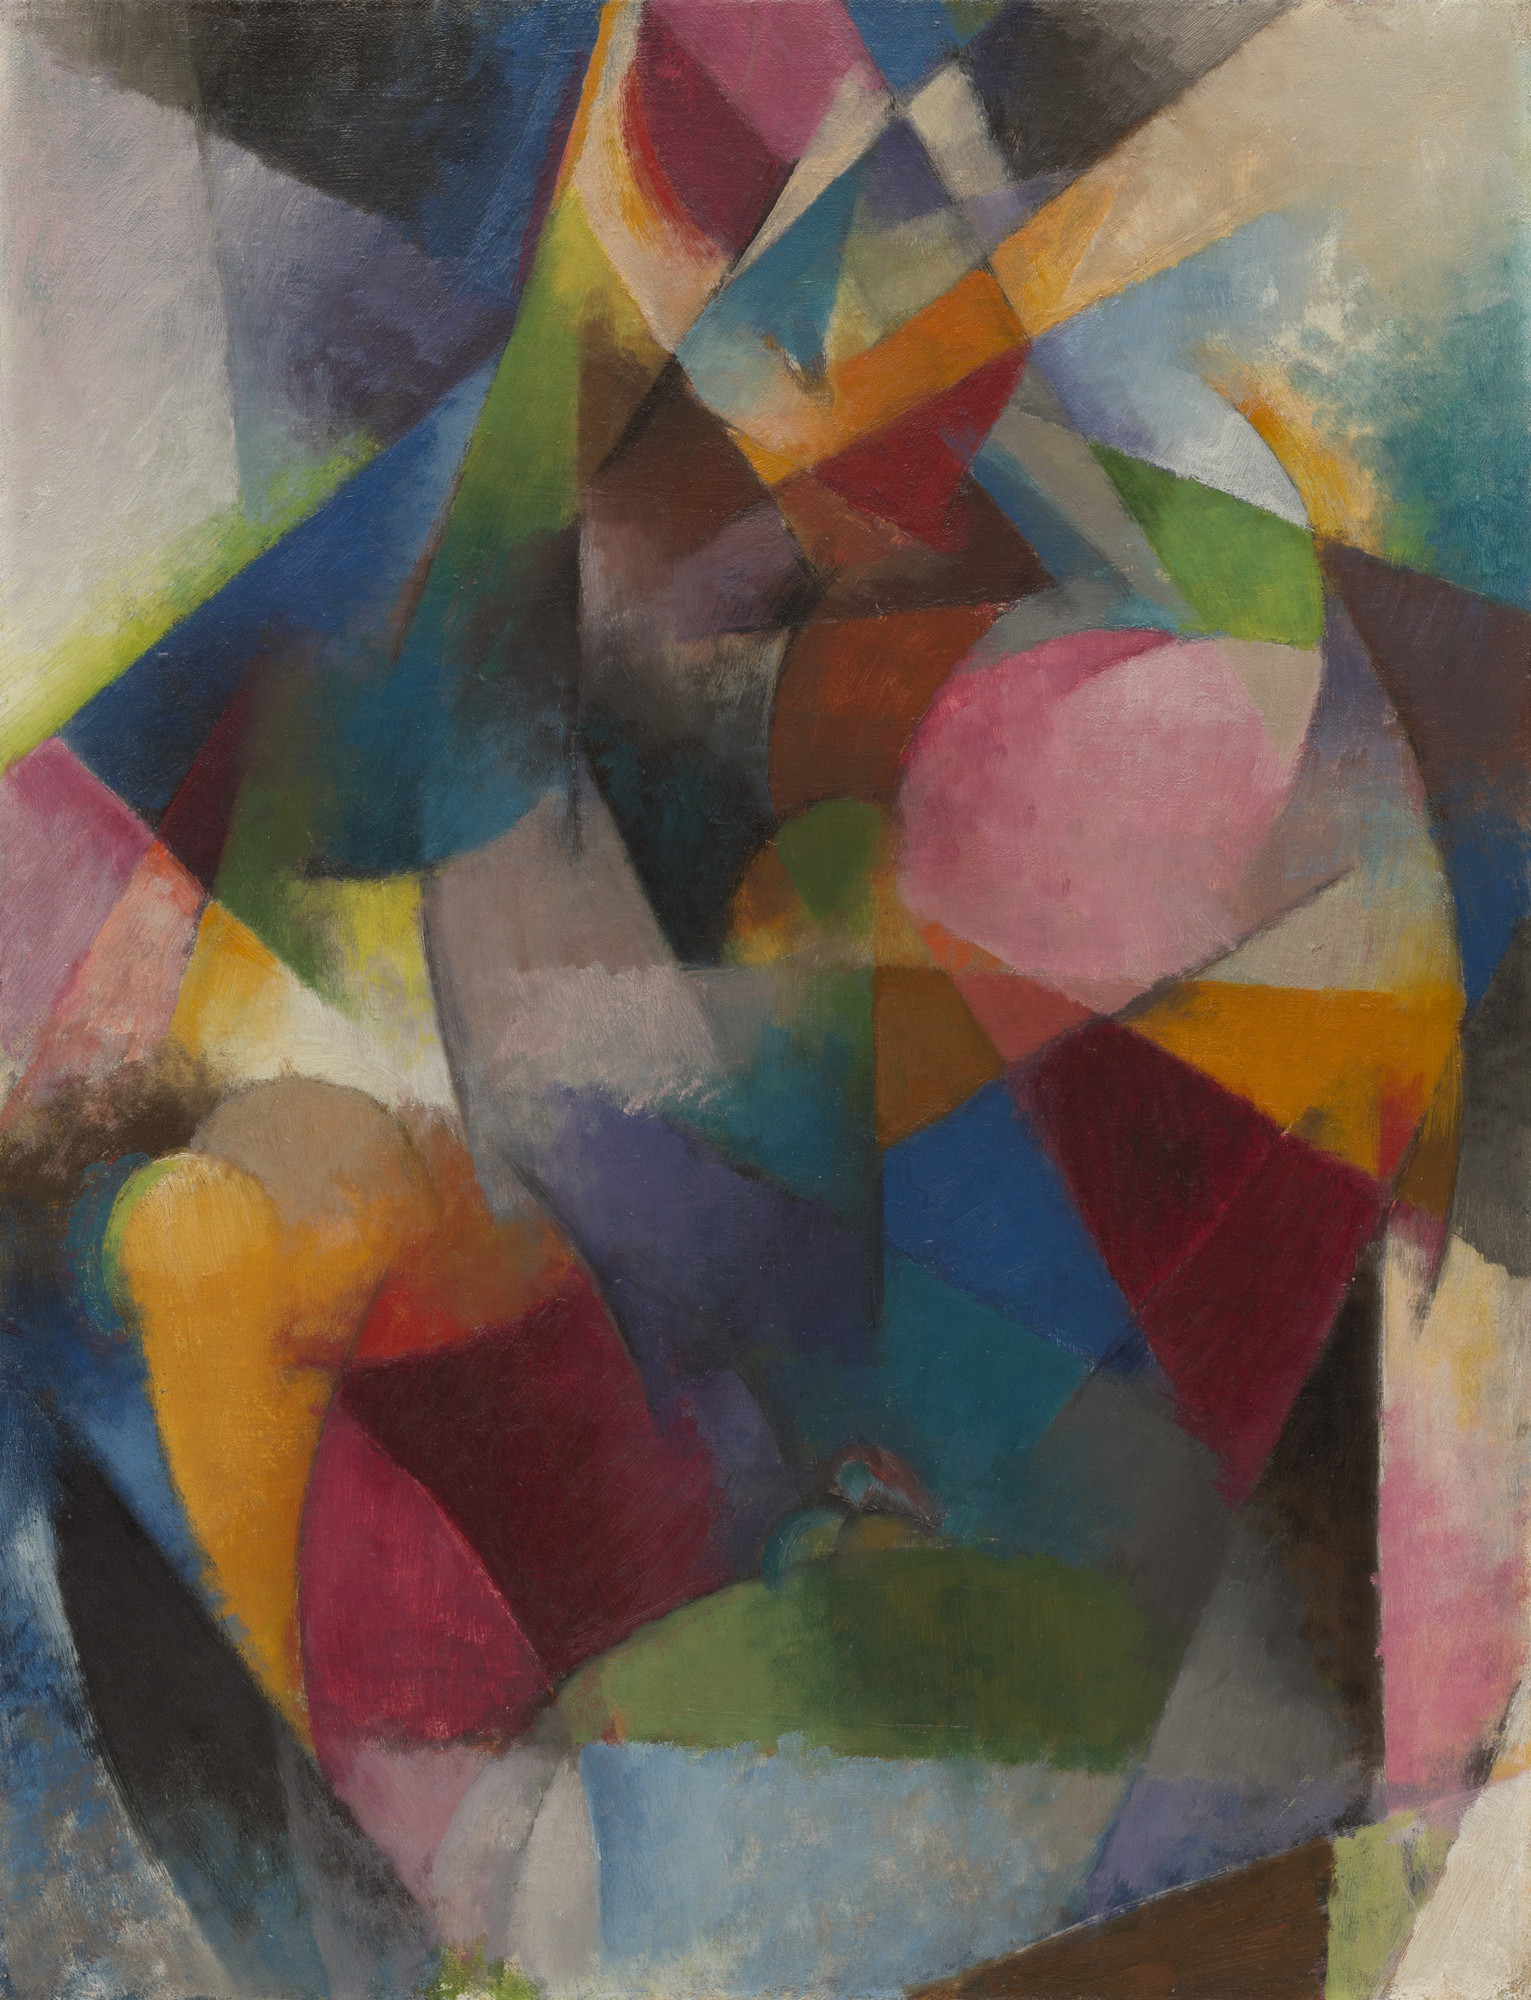 Stanton Macdonald-Wright. Synchromy in Blue. c. 1917-18